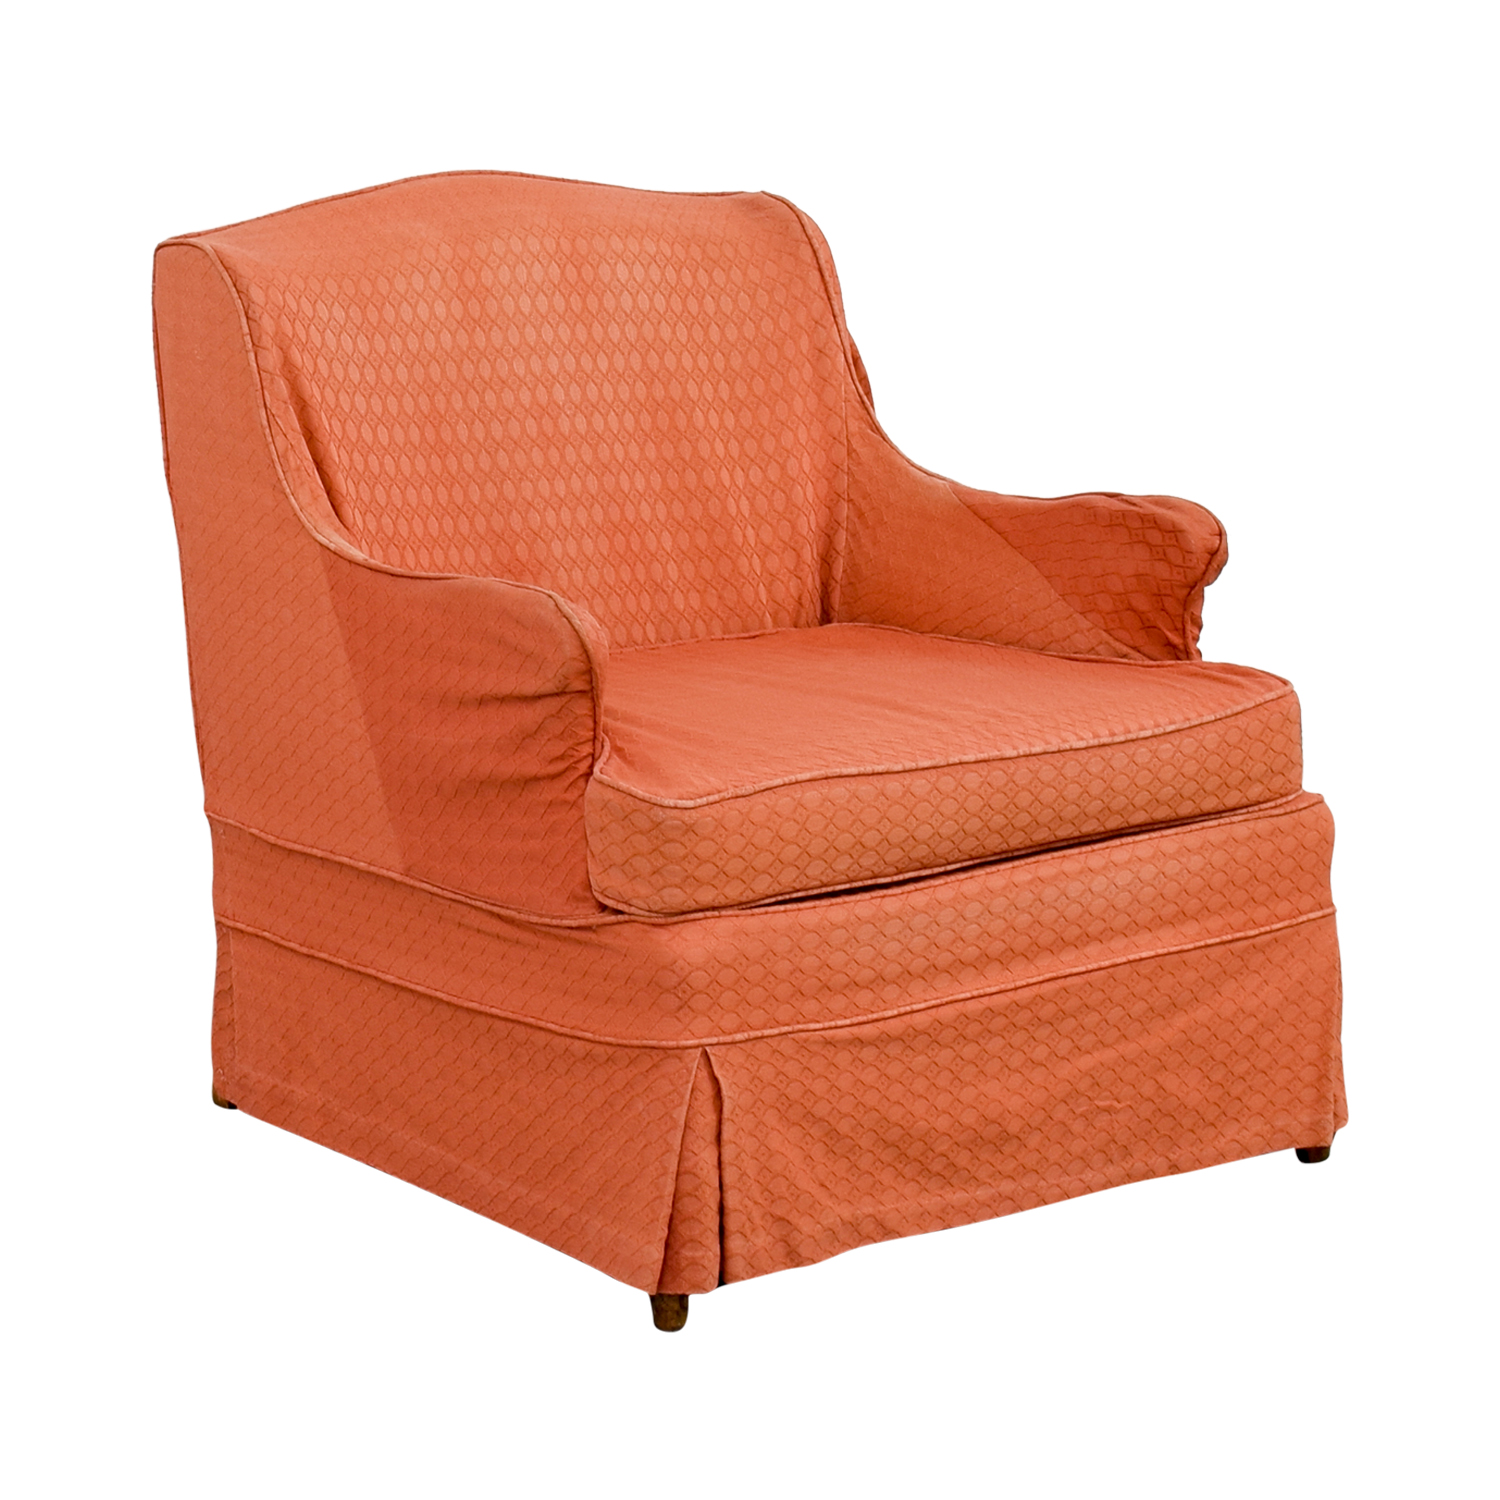 90 Off Vinatage French Provincial Coral Accent Chair